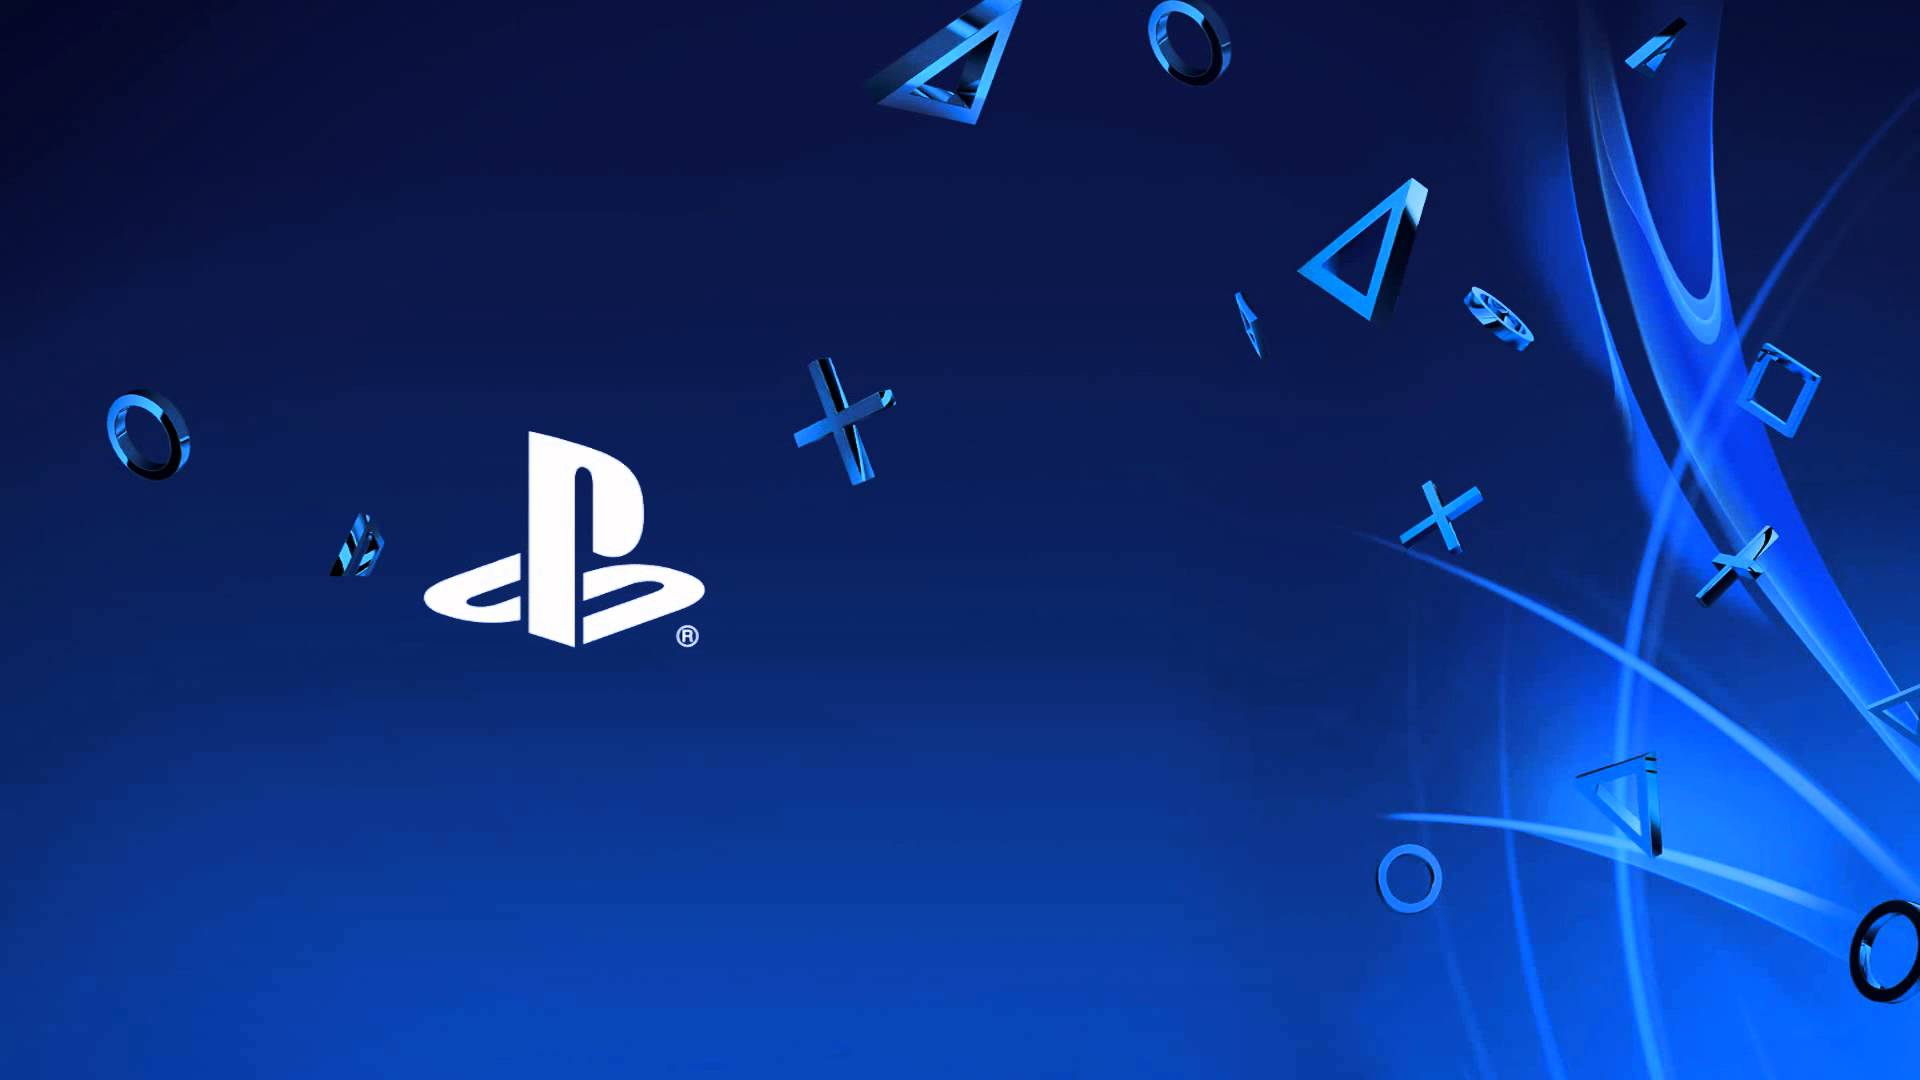 Ps4 Live Wallpaper Android